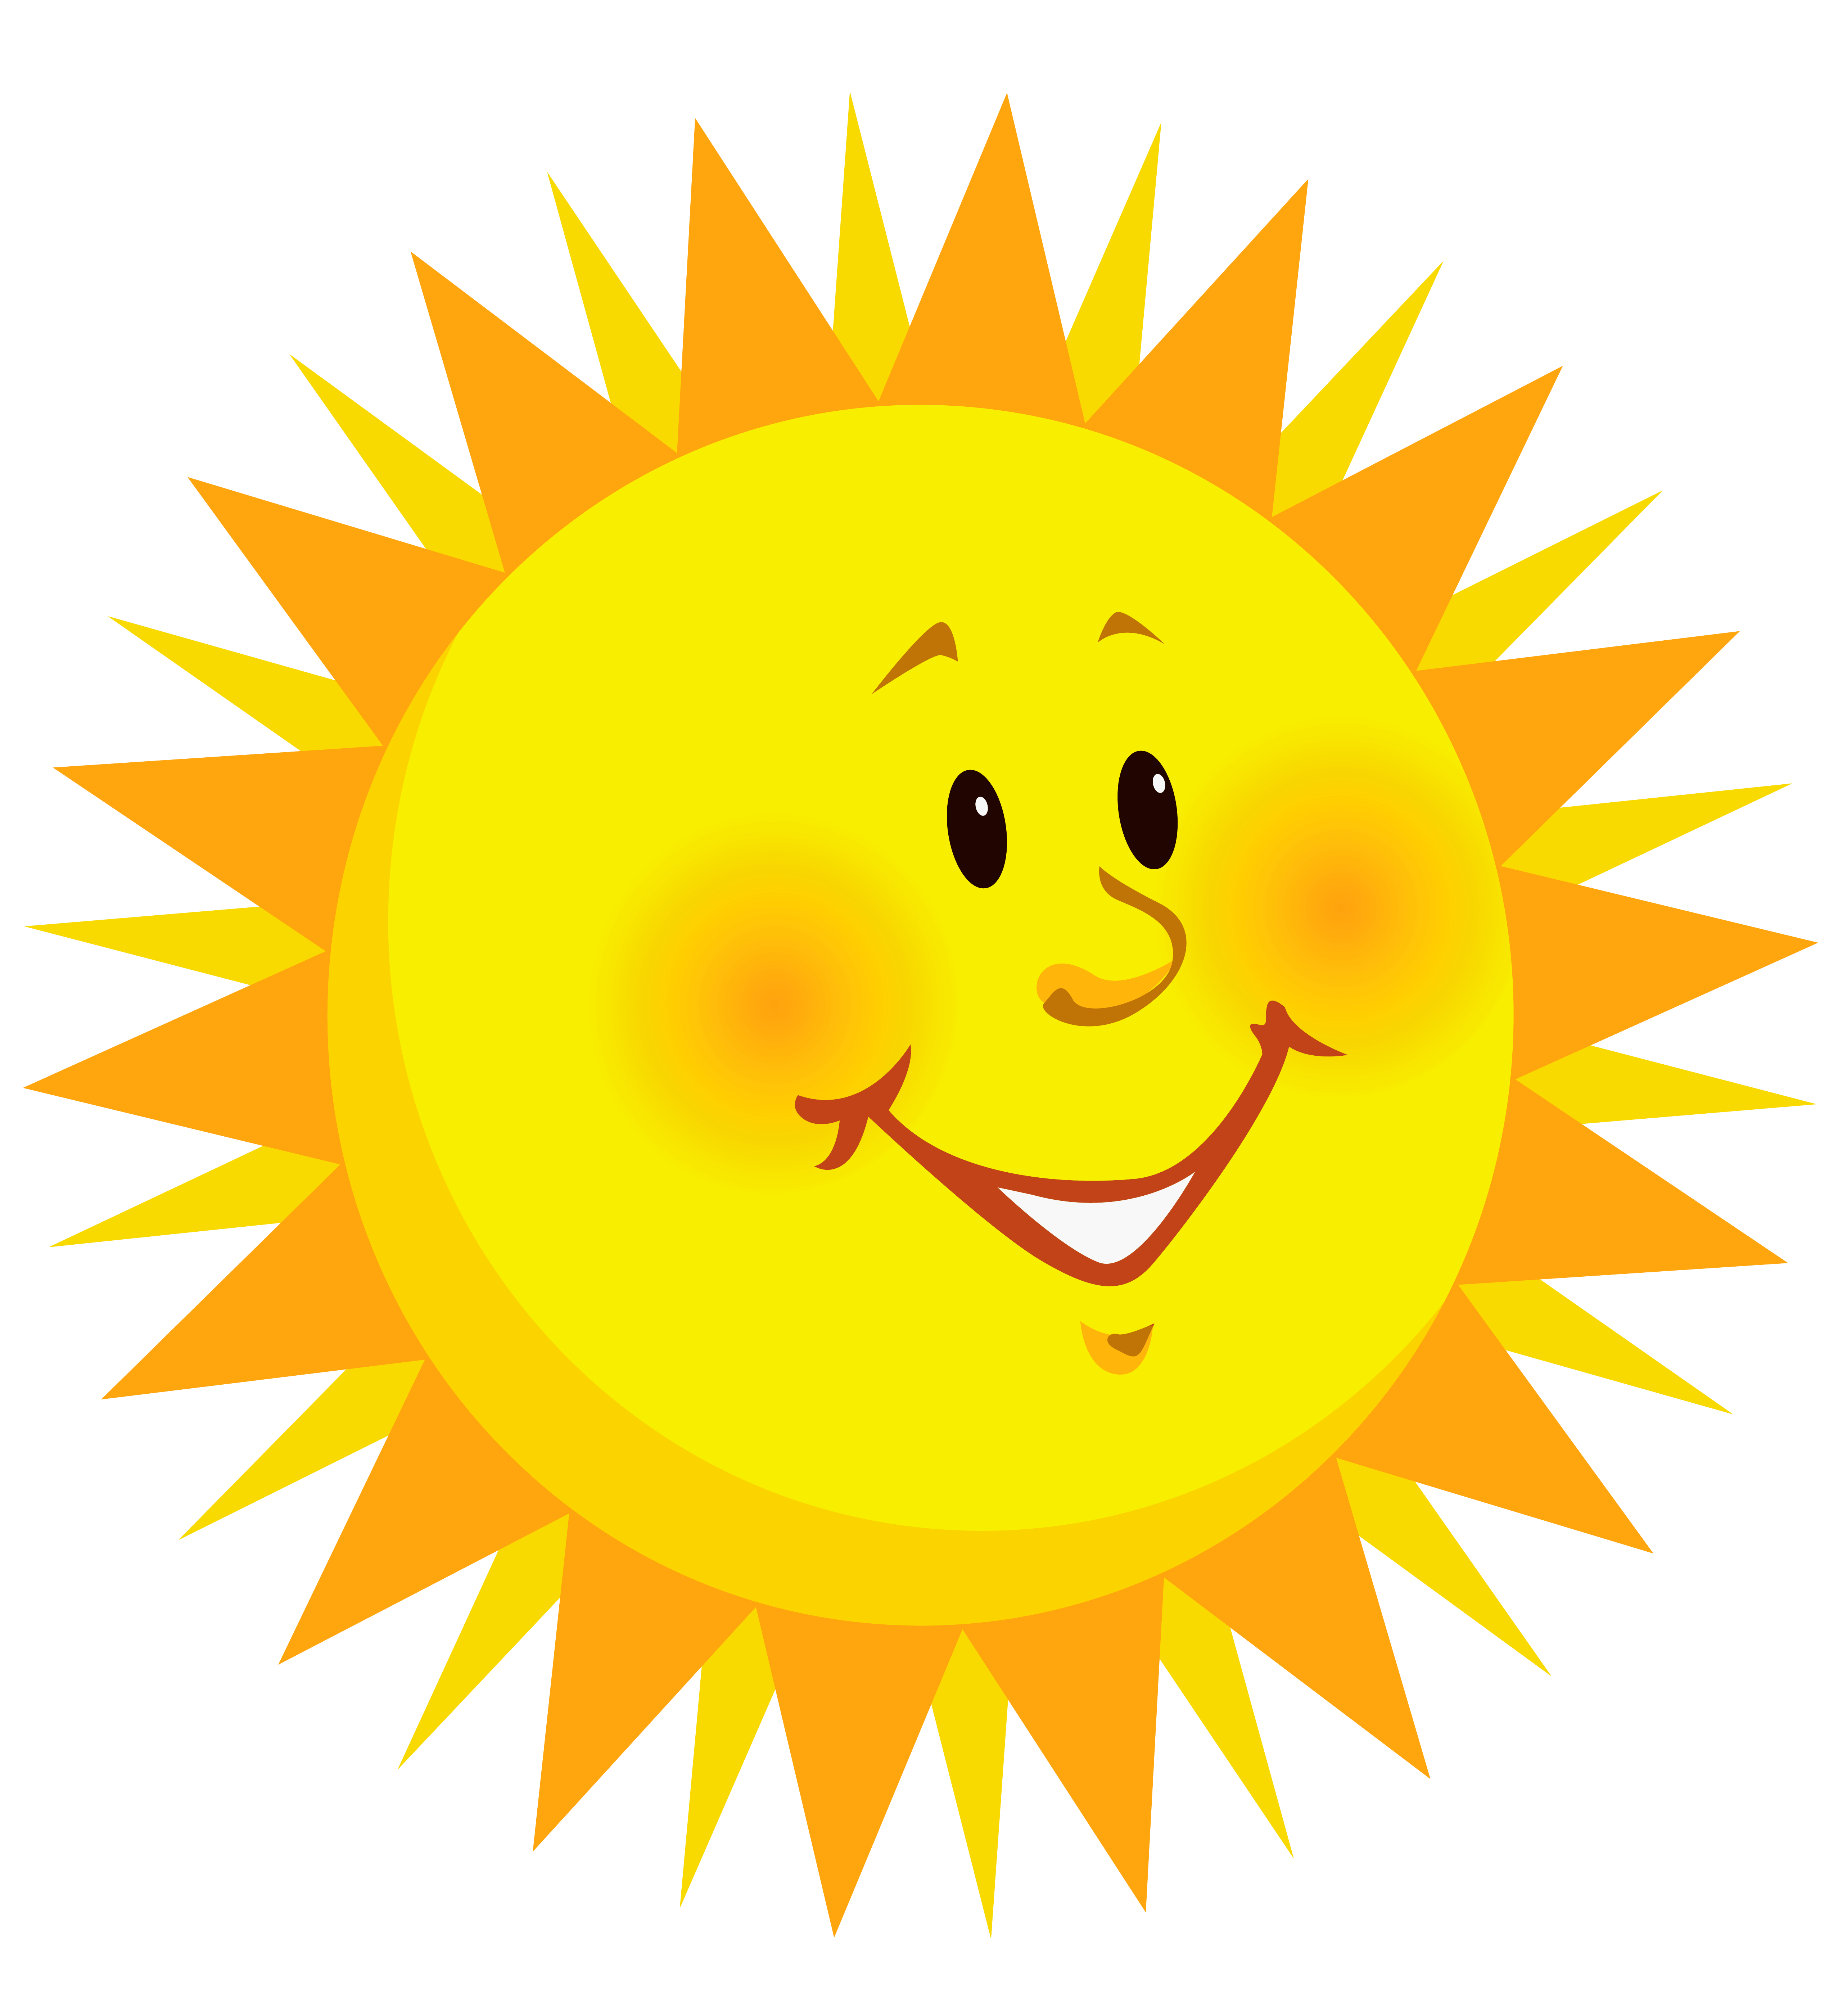 Transparent smiling sun png. Clipart smile sweet smile